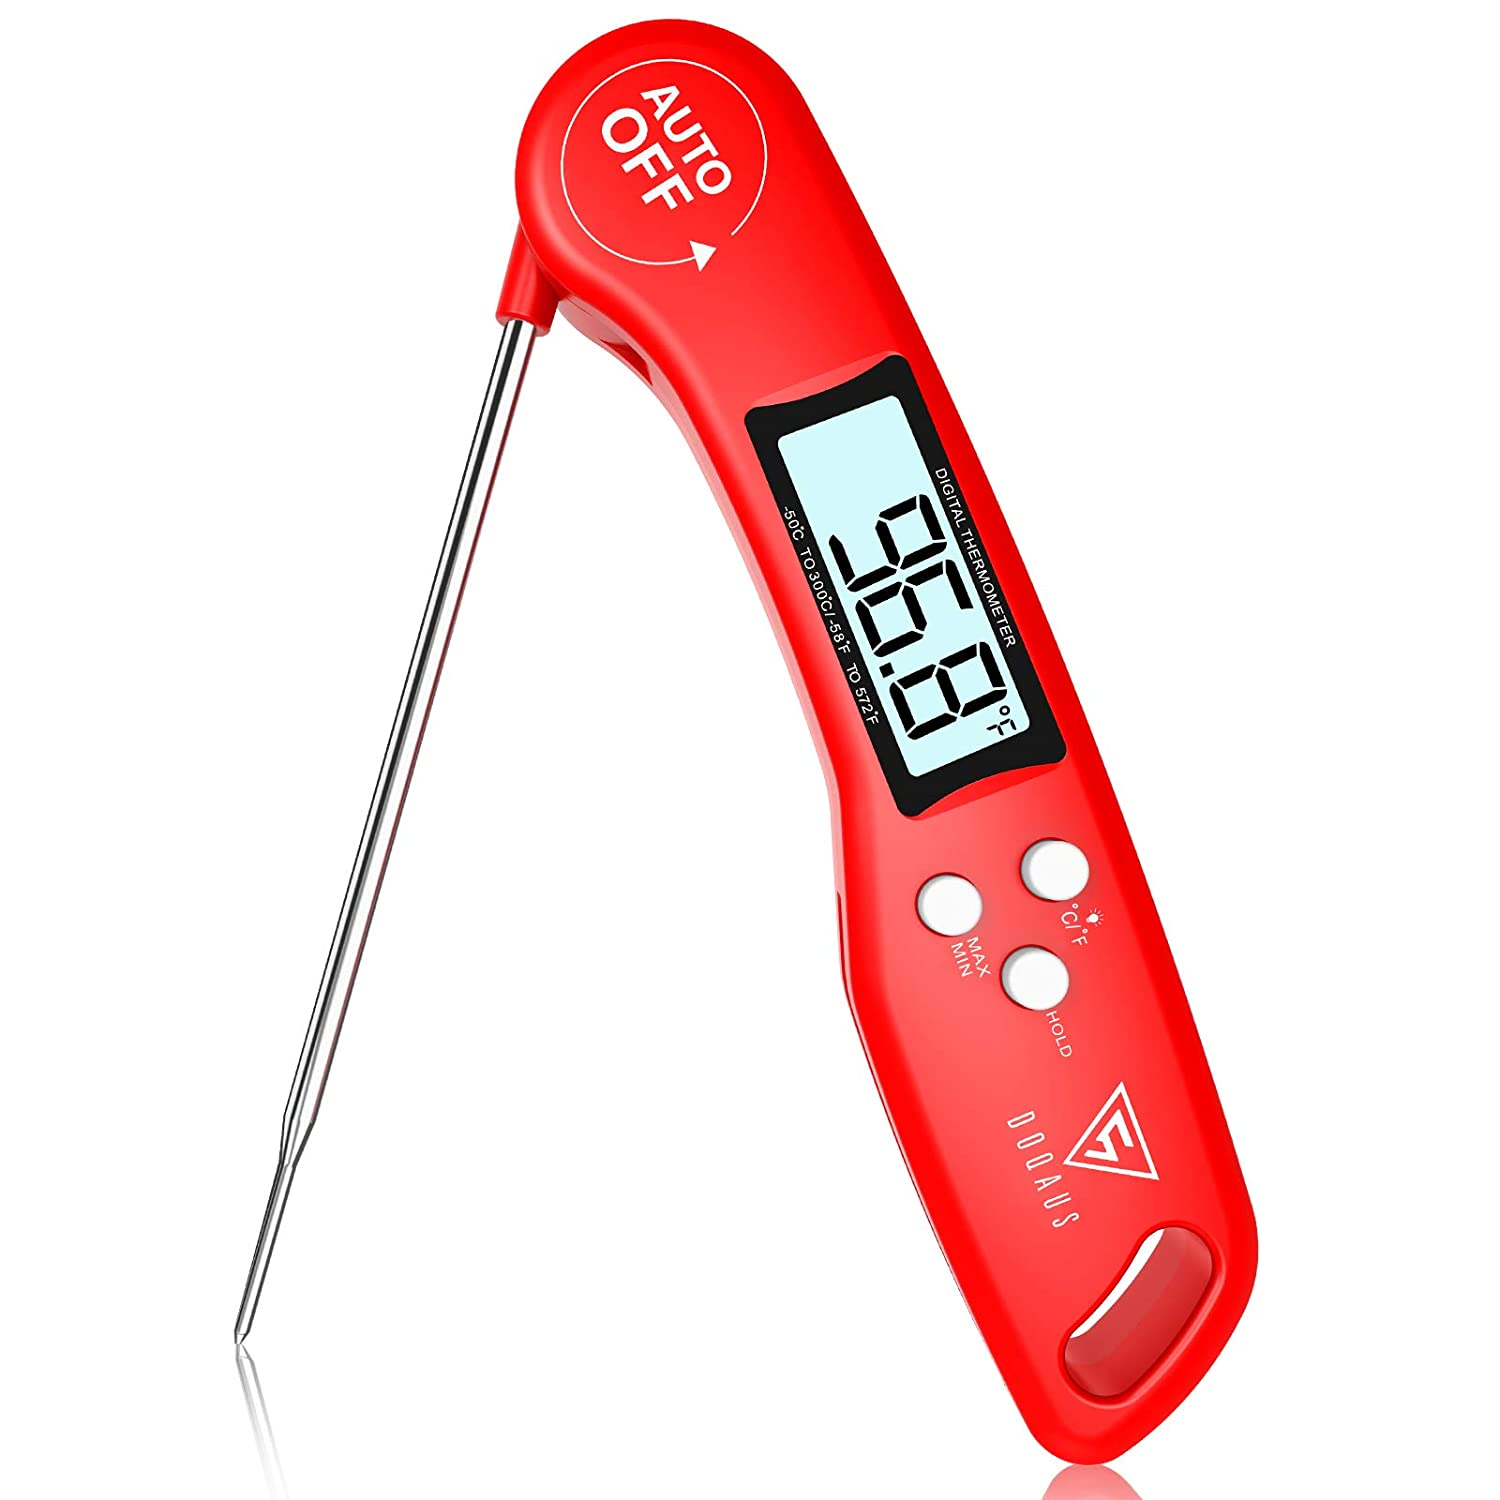 DOQAUS Digital Meat Thermometer, 3s Instant Read Food Thermometer, Cooking Thermometer with Ambidextrous Display, Backlight, Foldable & Long Probe for Grill Candy Turkey BBQ Milk Water¡­